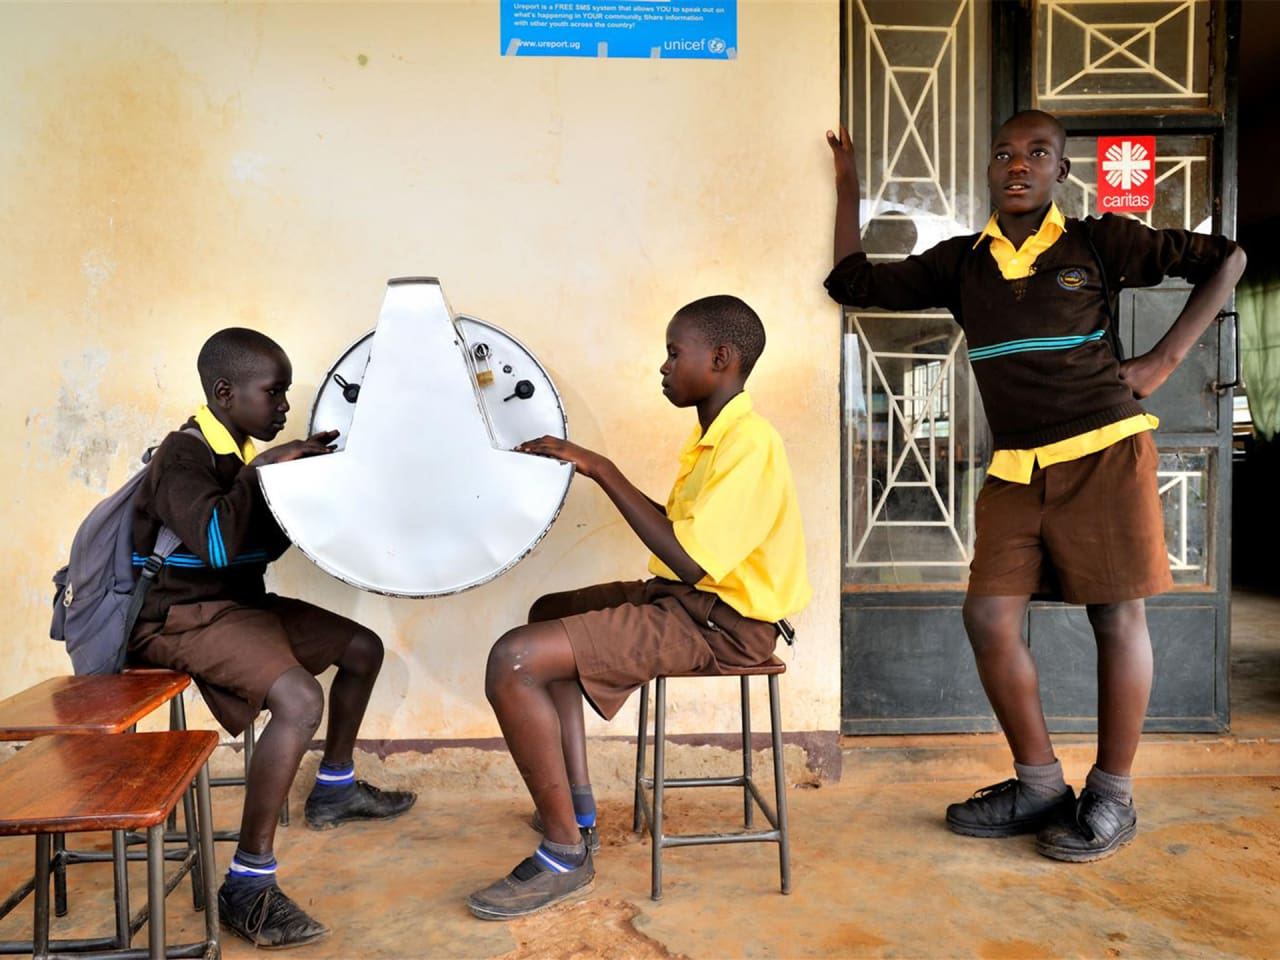 UNICEF Is Launching A Venture Fund For Open-Source Civic Technology